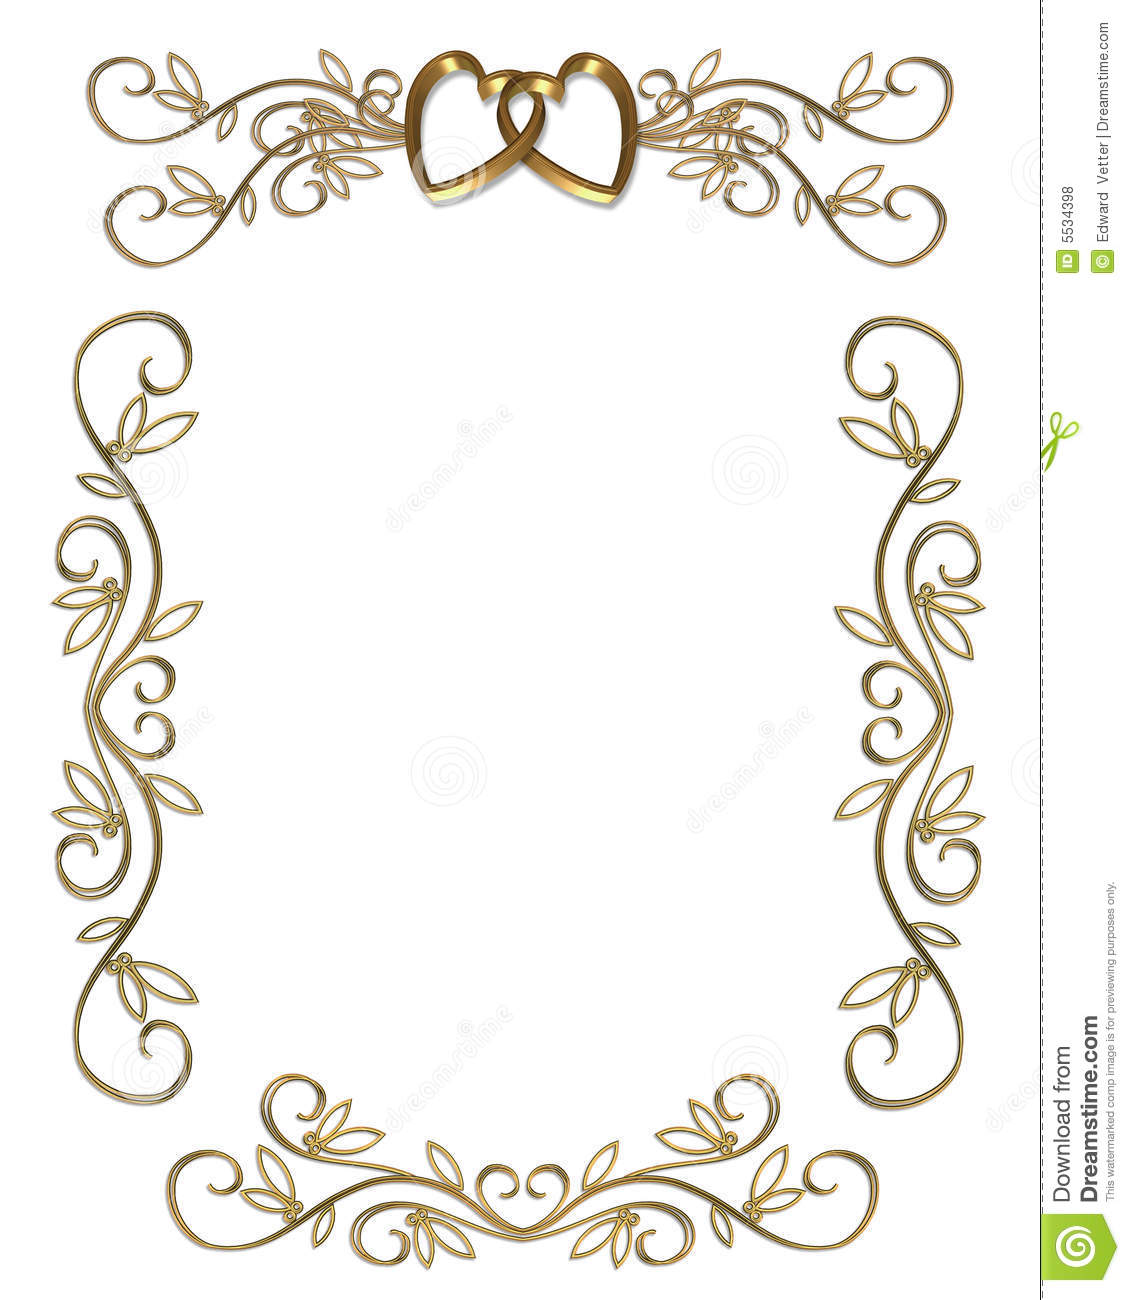 Border clipart for wedding invitation 6 » Clipart Station.